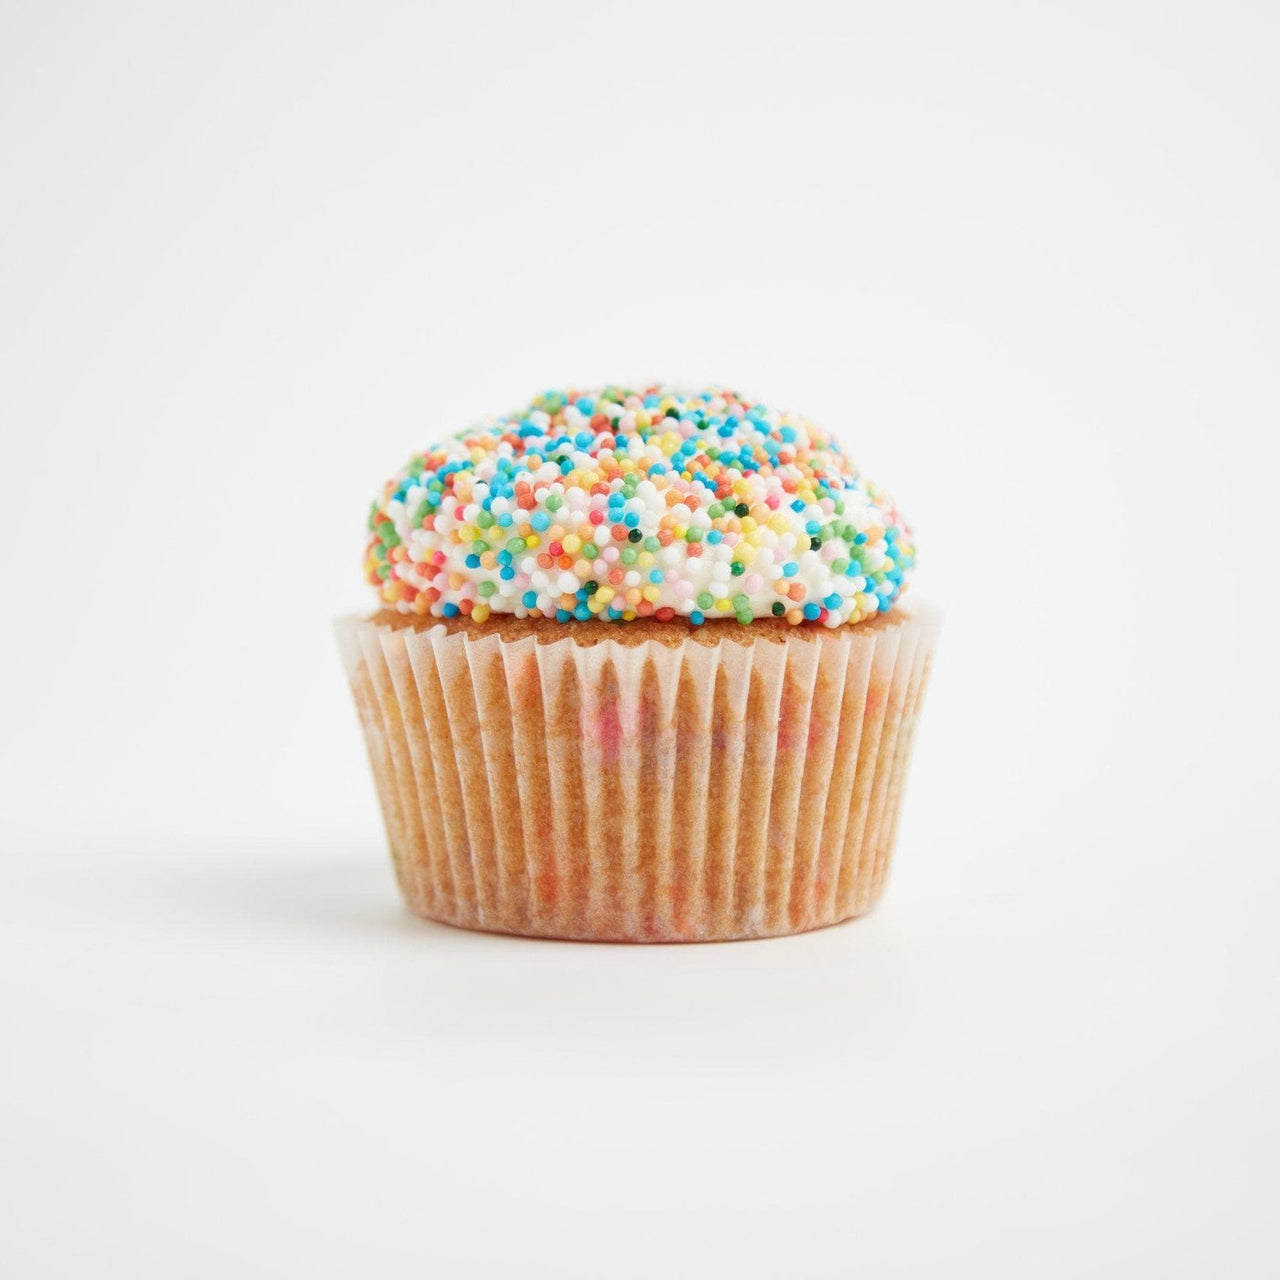 Sprinkle Cupcakes by Crumbs & Doilies